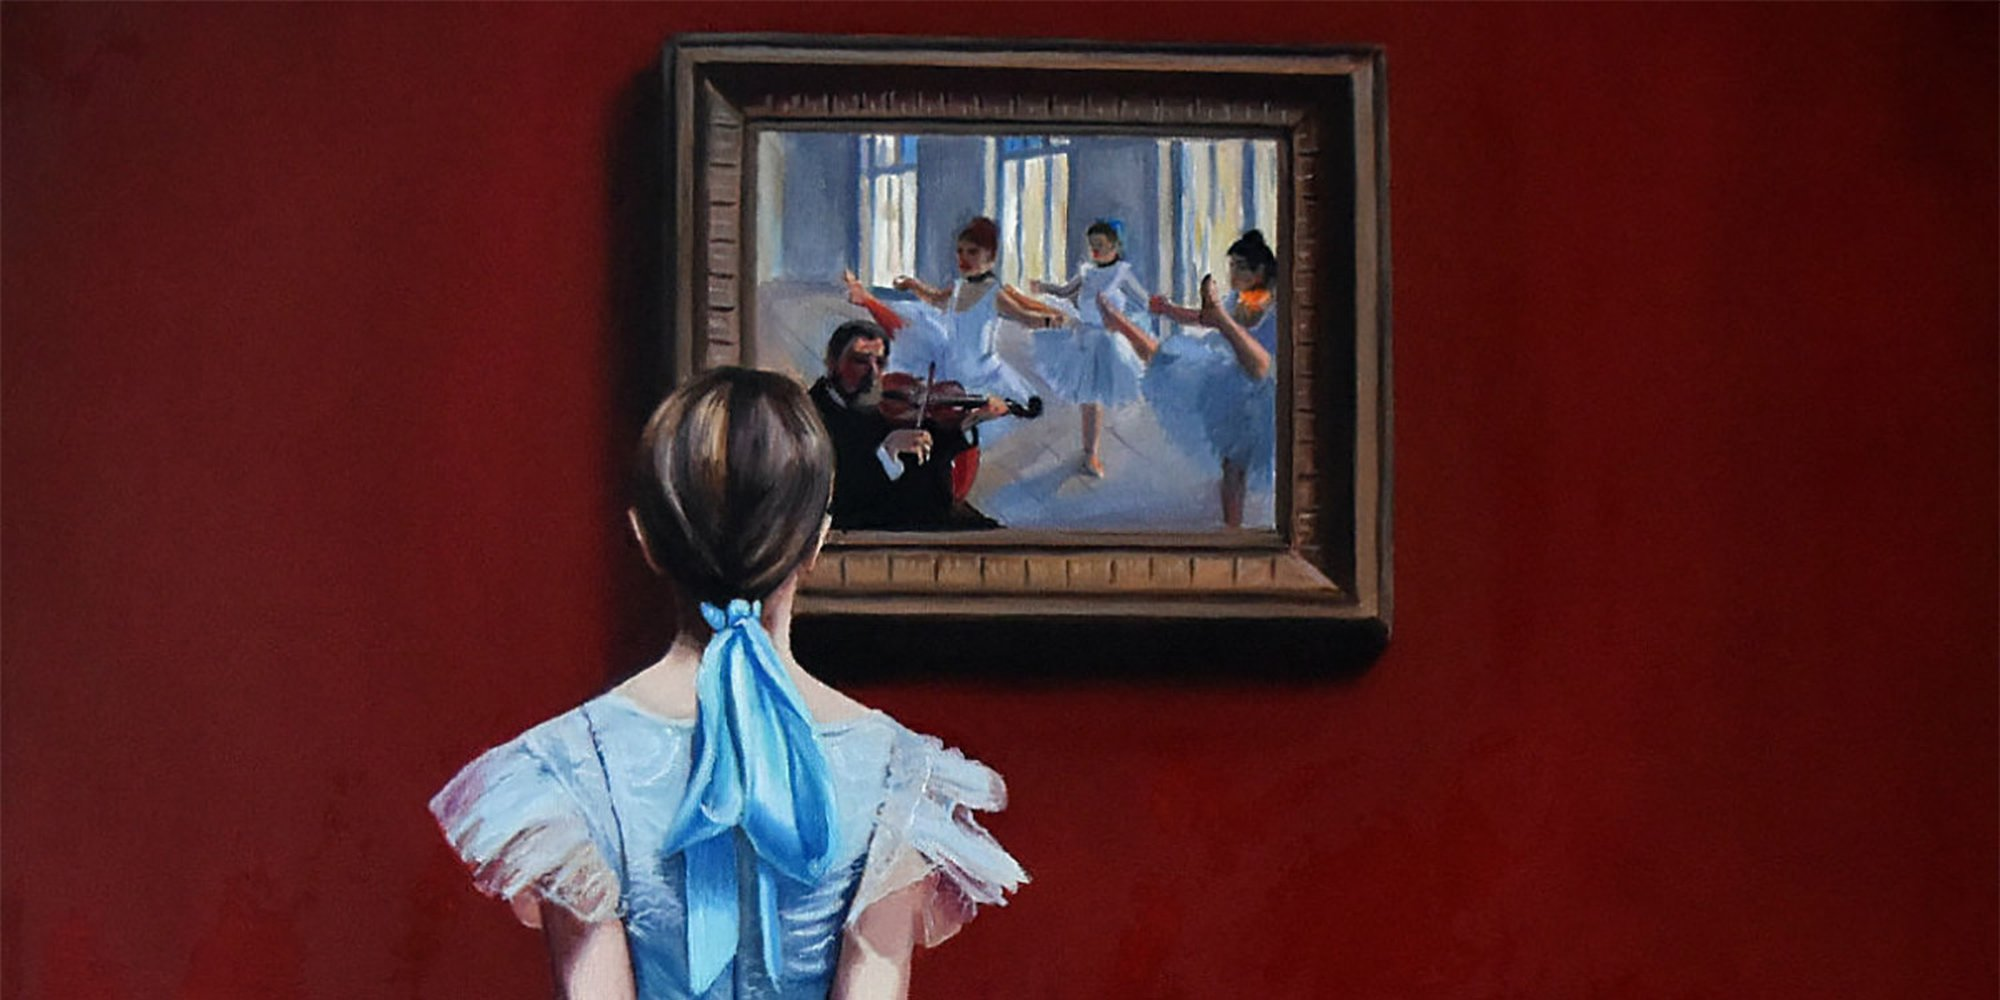 Who is Degas?